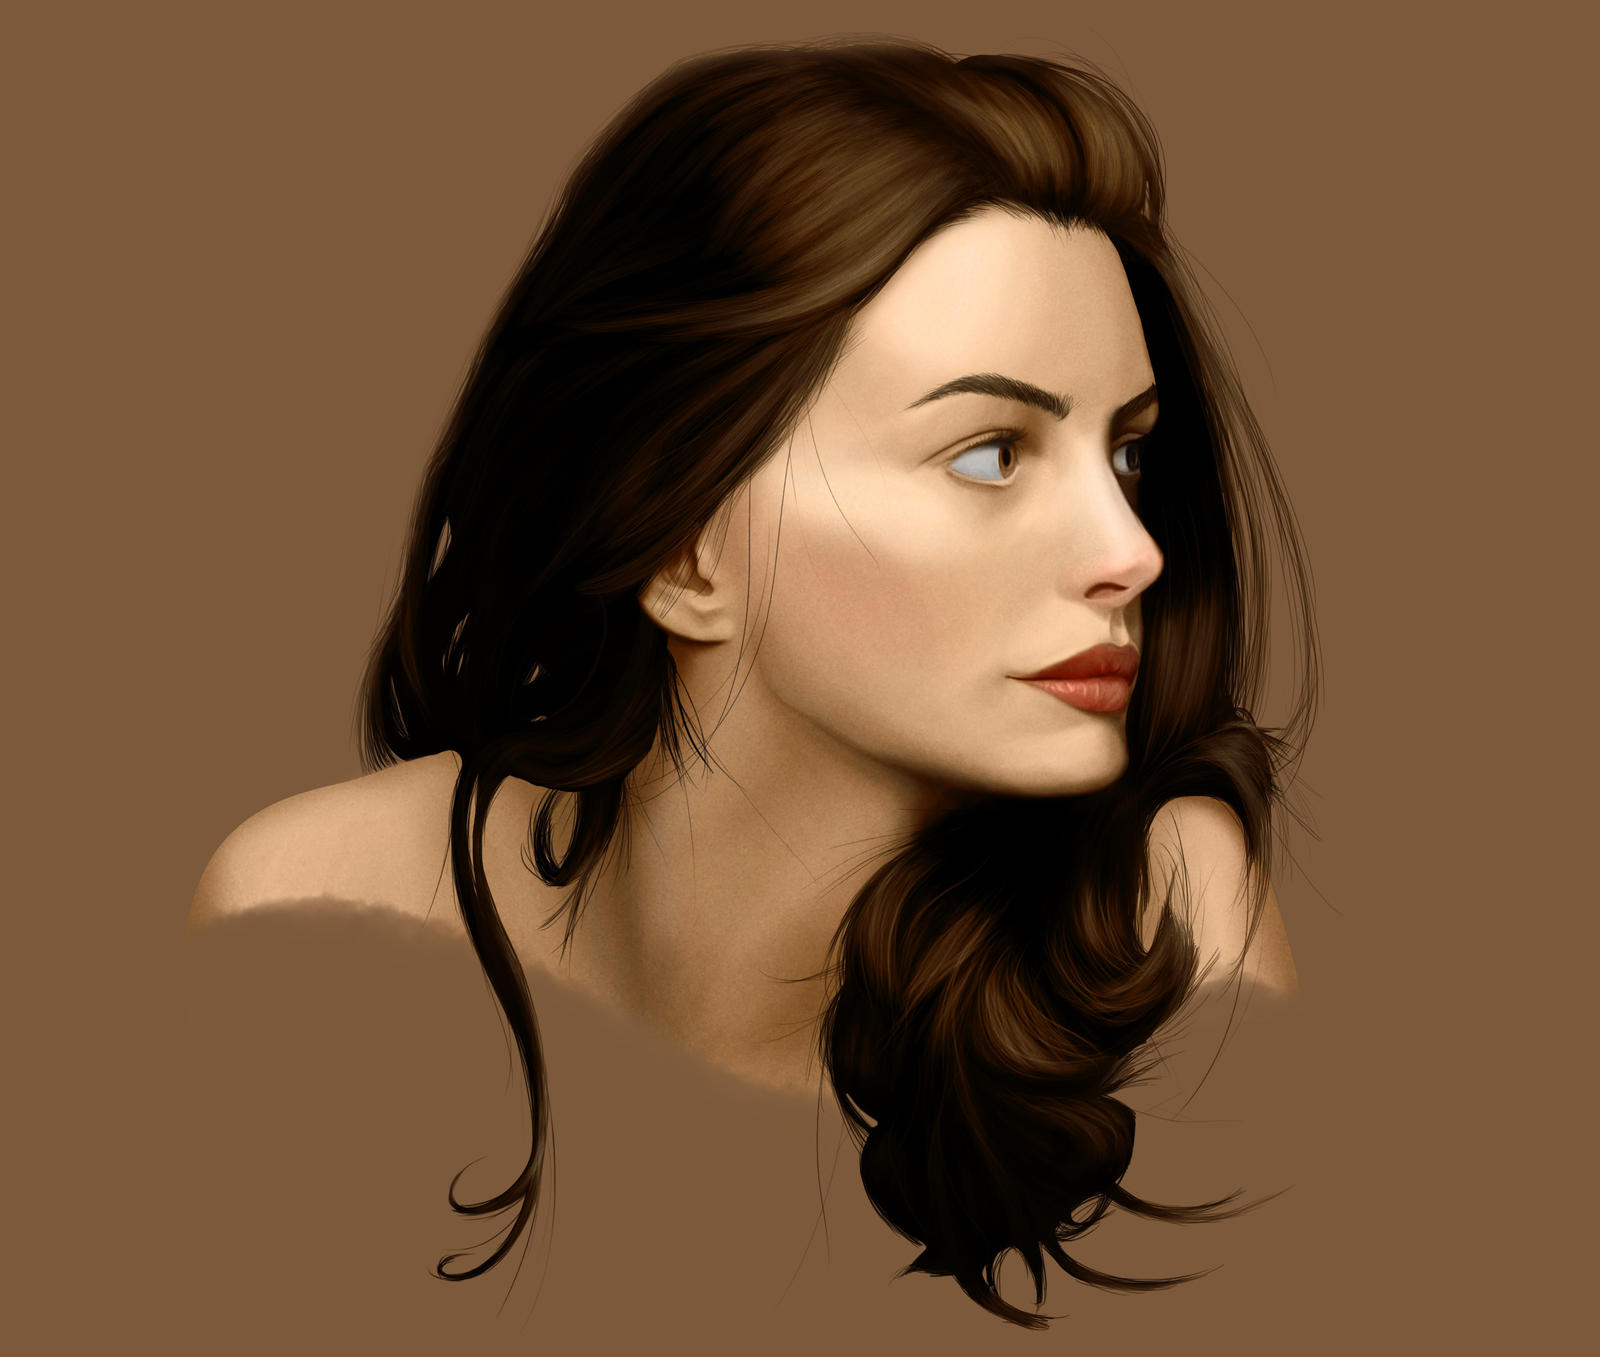 Anne Hathaway People: Anne Hathaway Portrait By ArK-Seraph On DeviantArt